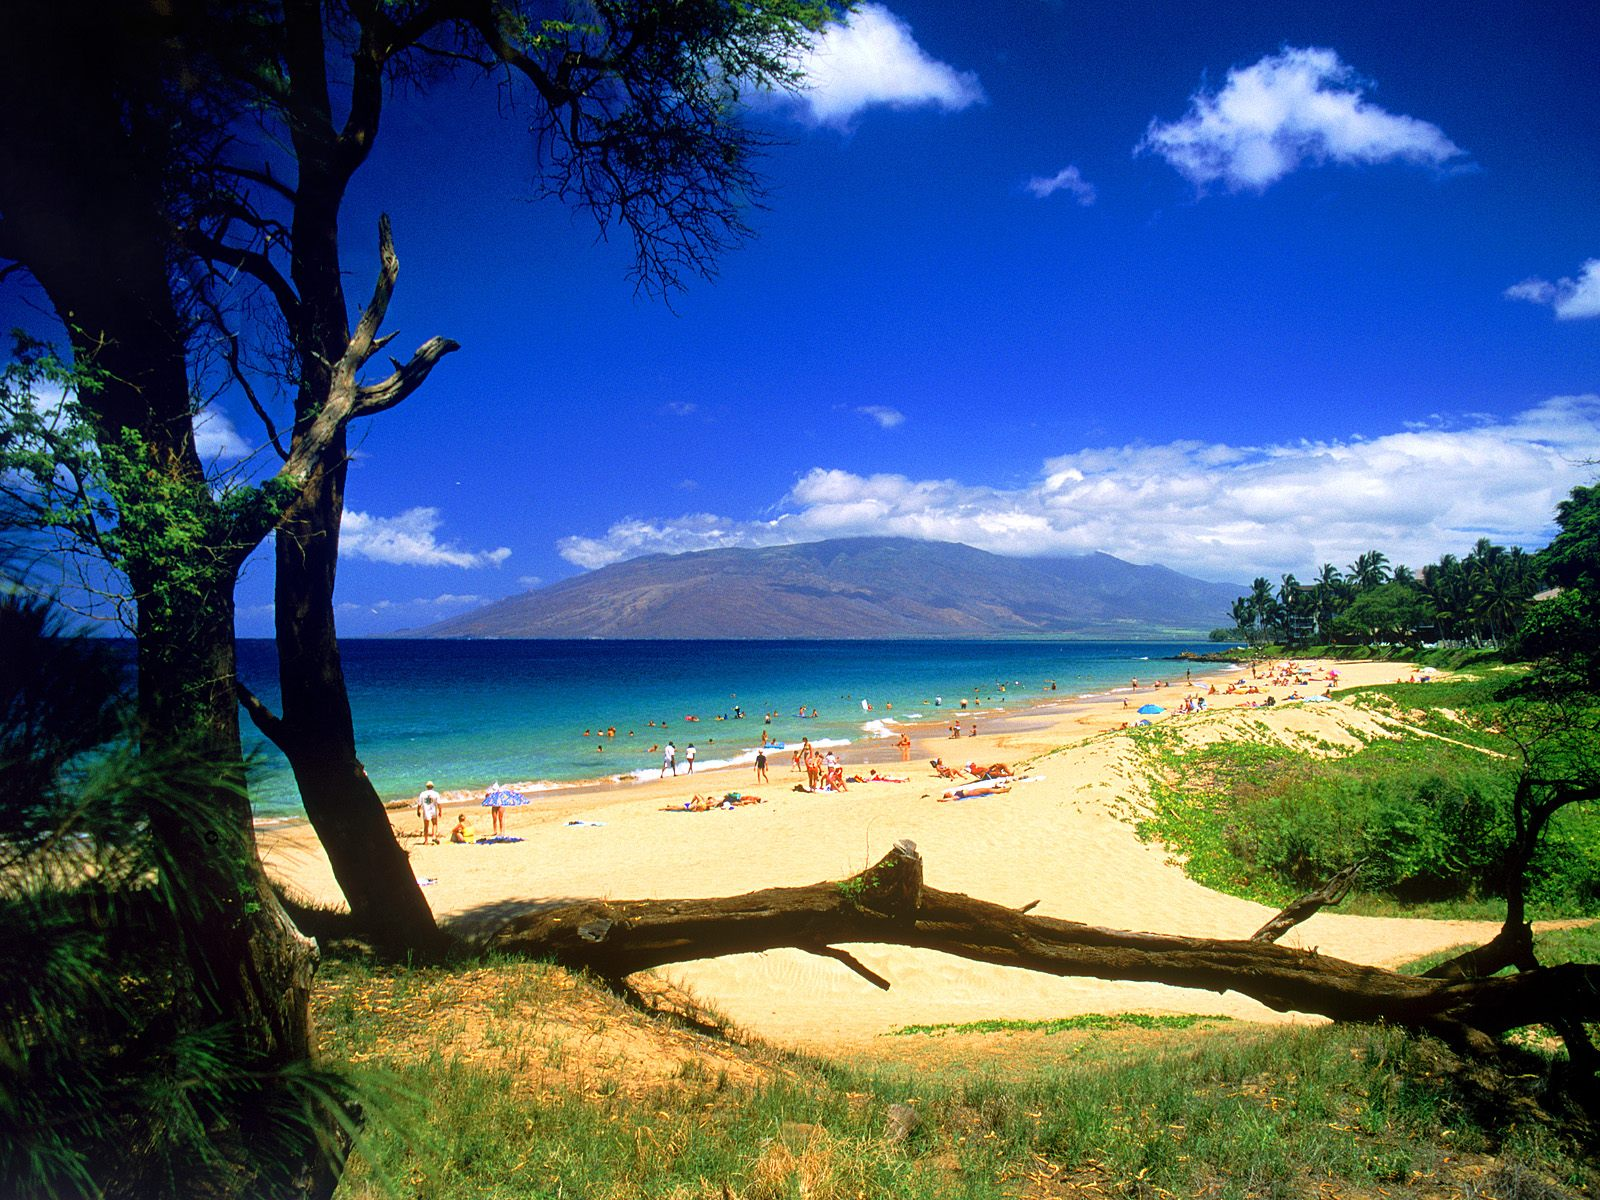 Amazing HD Summer wallpaper collection Here you can find Summer 1600x1200